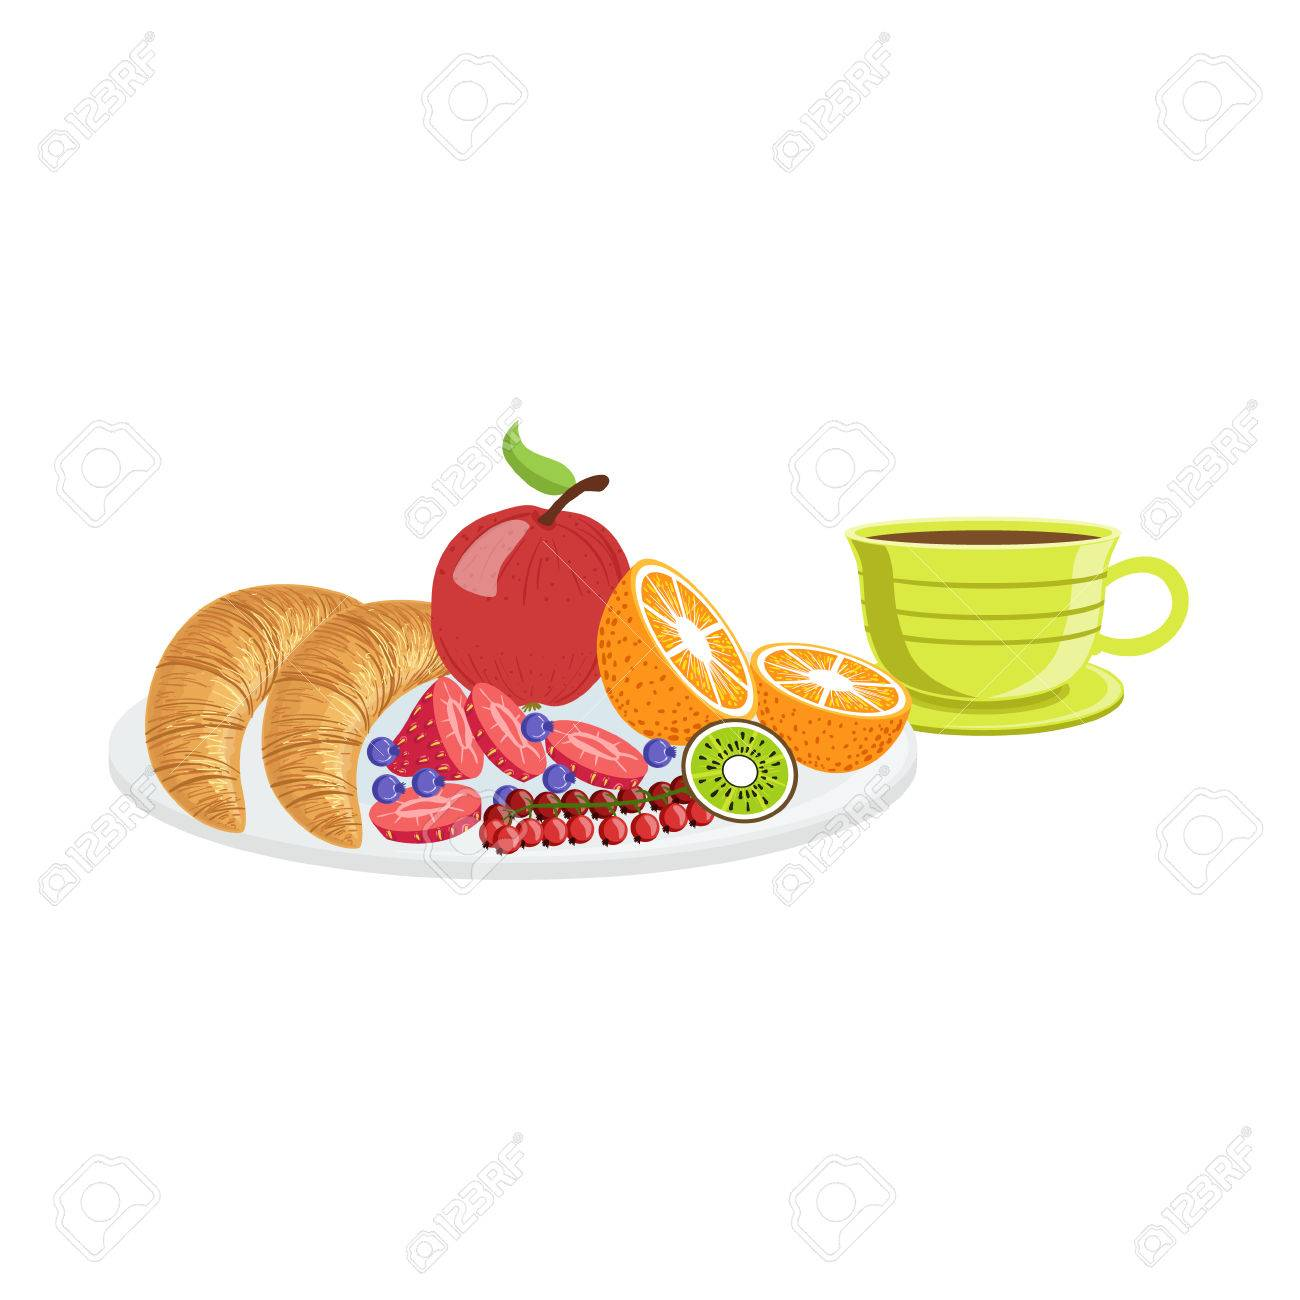 Croissant Fruit And Coffee Breakfast Food And Drink Set Morning Royalty Free Cliparts Vectors And Stock Illustration Image 64035328